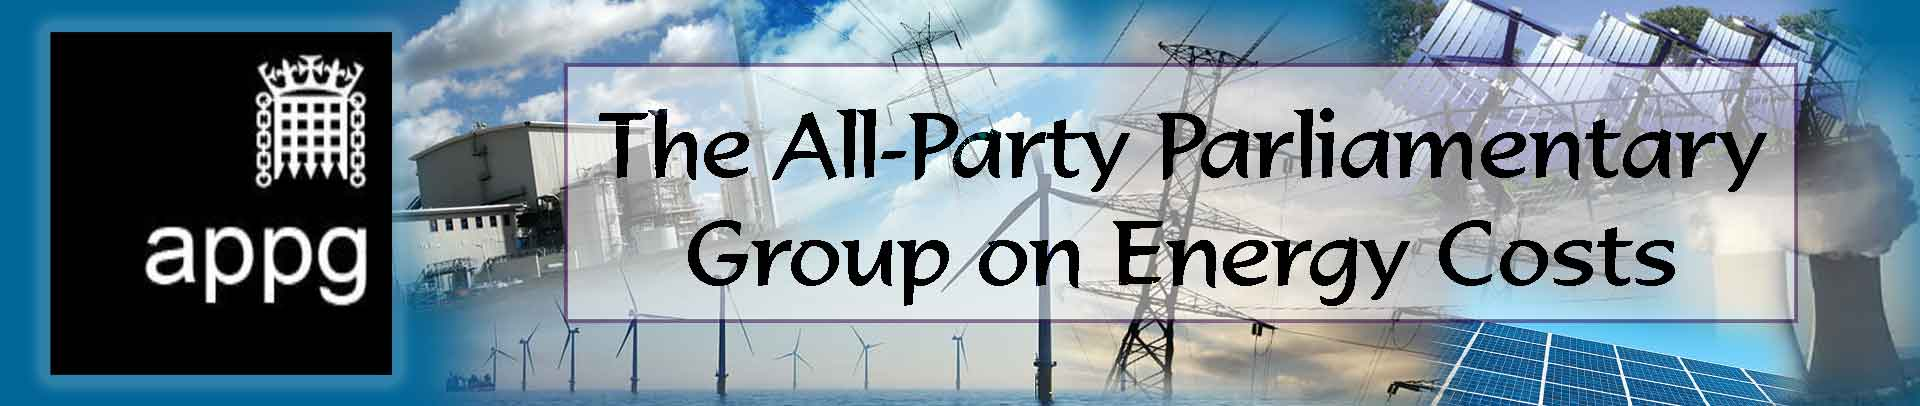 The All-Party Parliamentary Group on Energy Costs